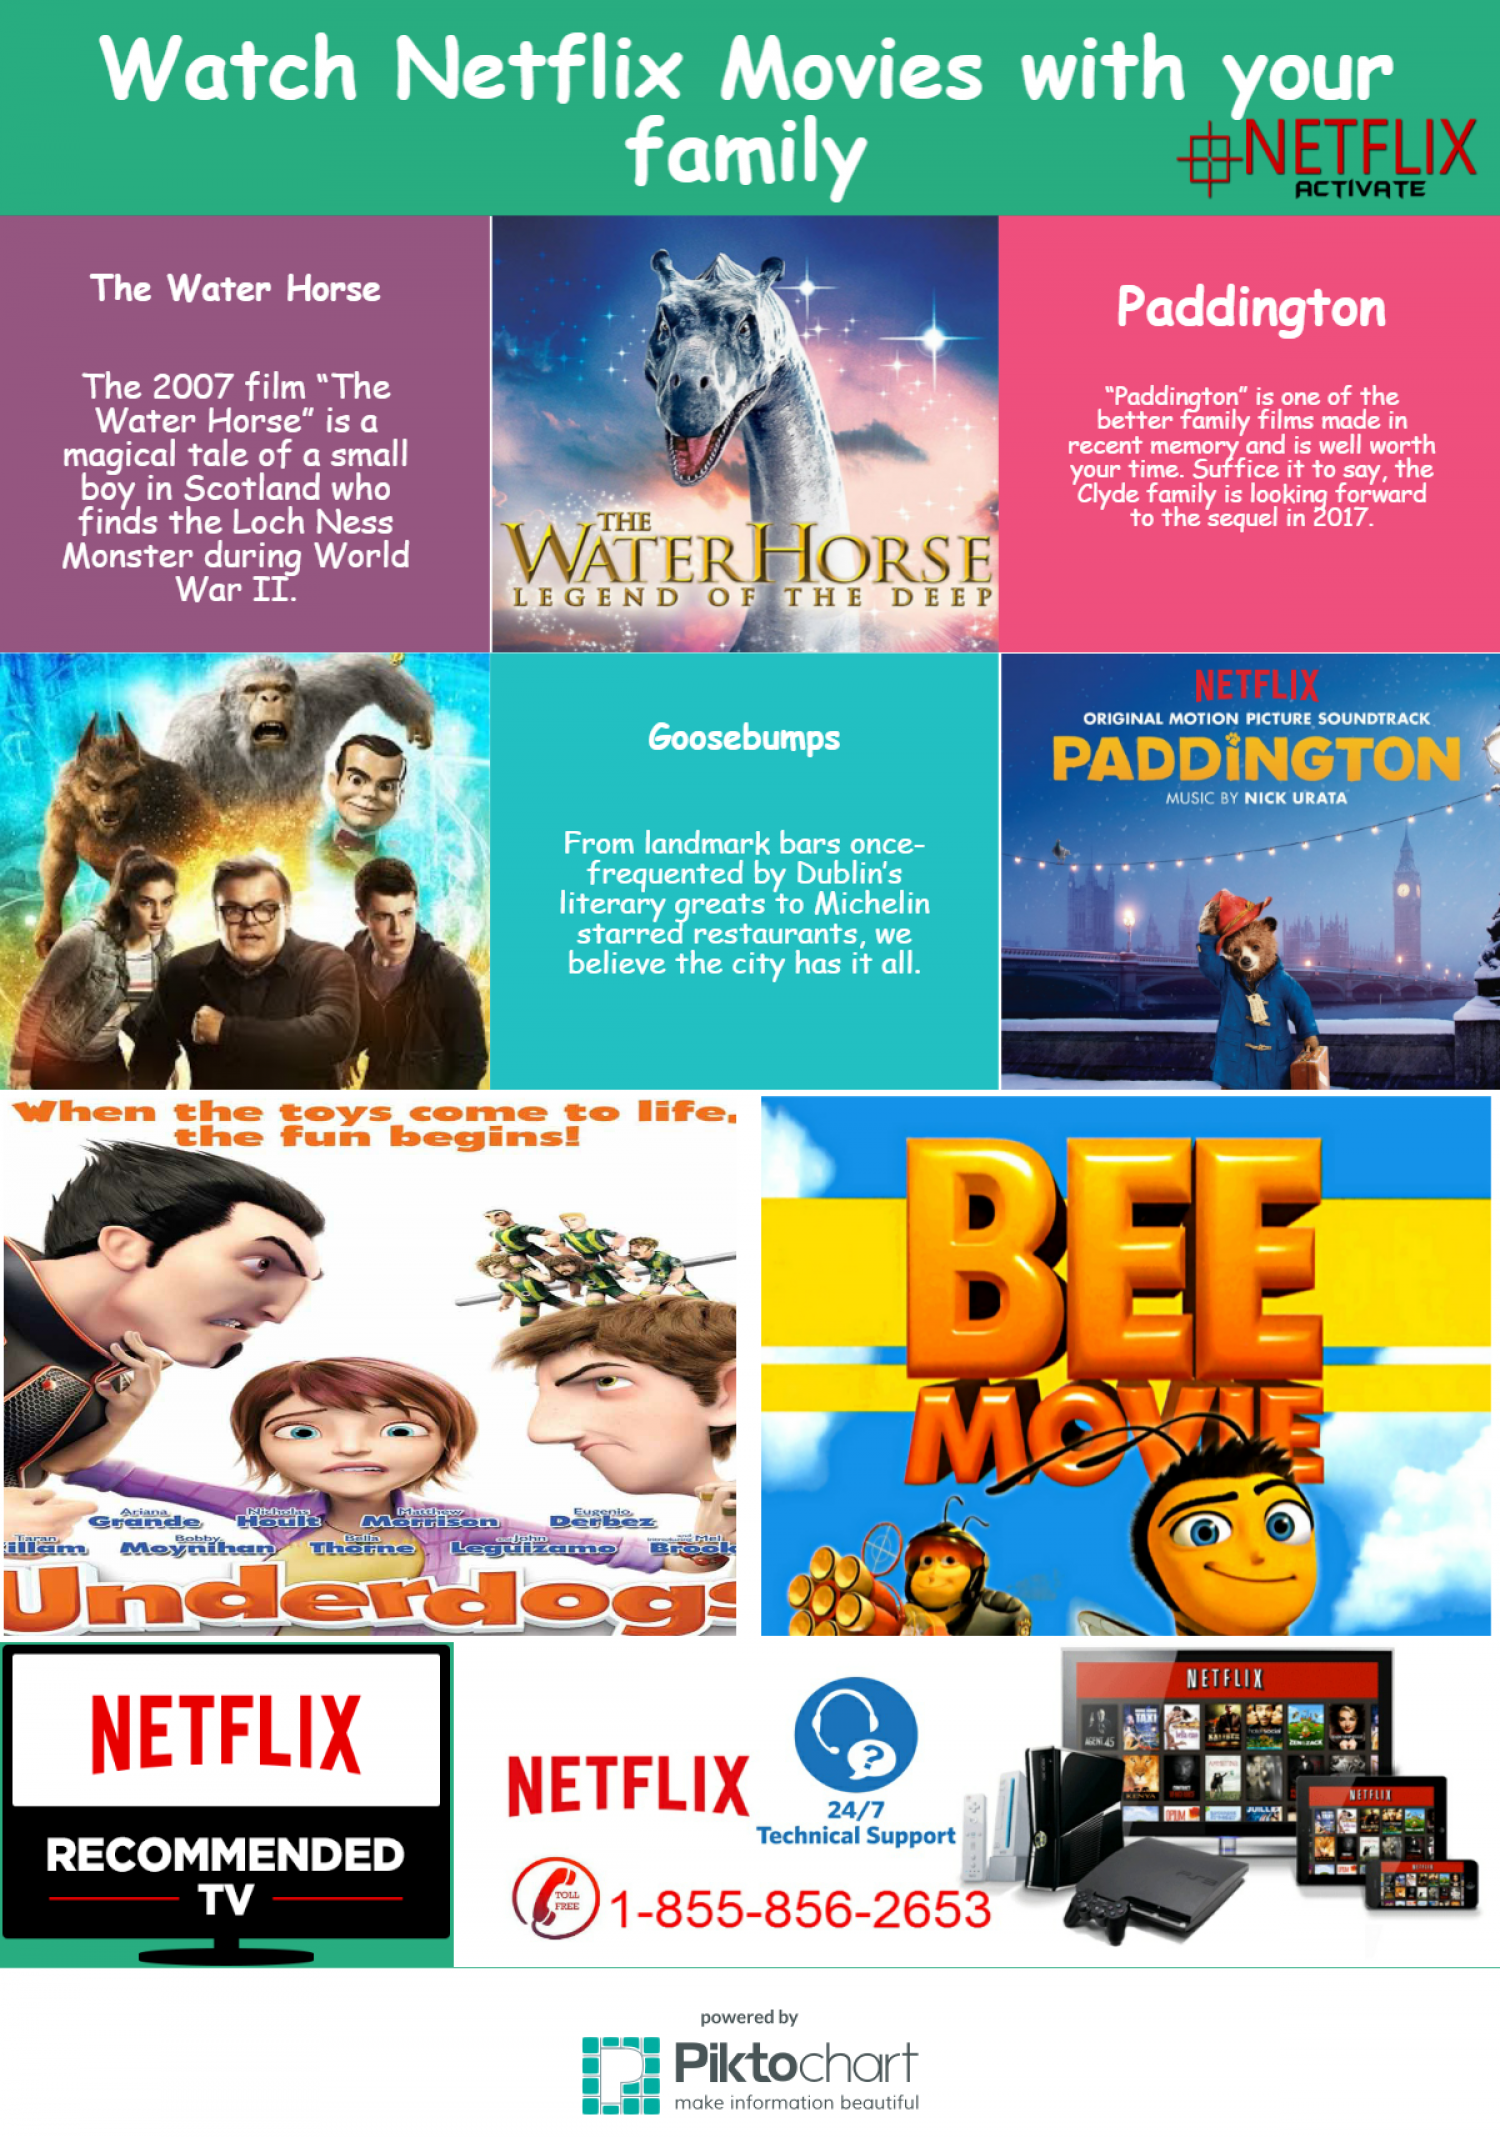 Netflix offering 5 family movies call us at 1855-856-2653 Infographic